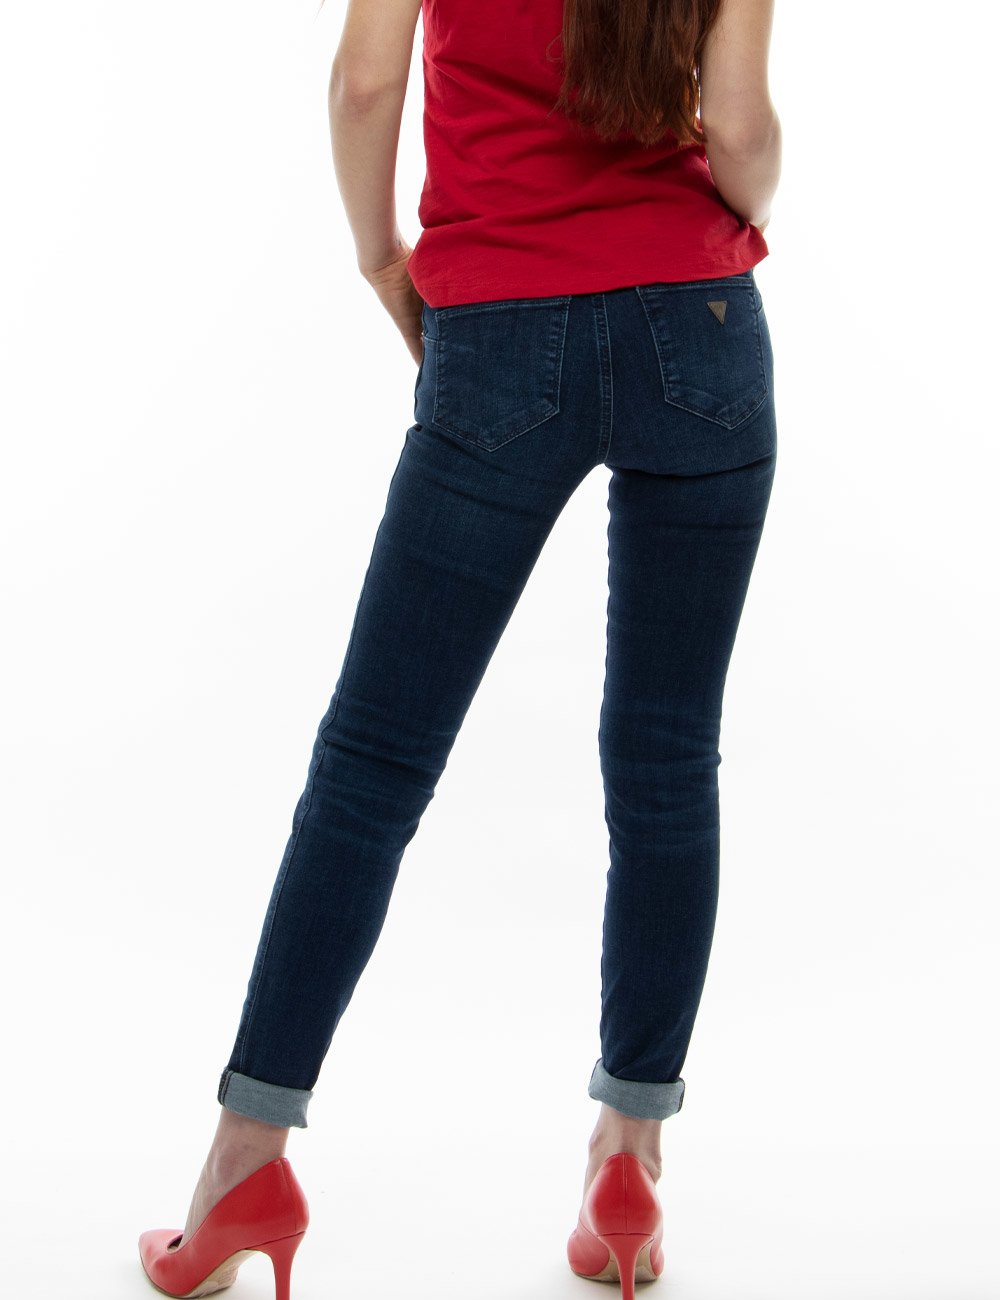 Guess jeans guess skinny jeans secondastrada neri jeans